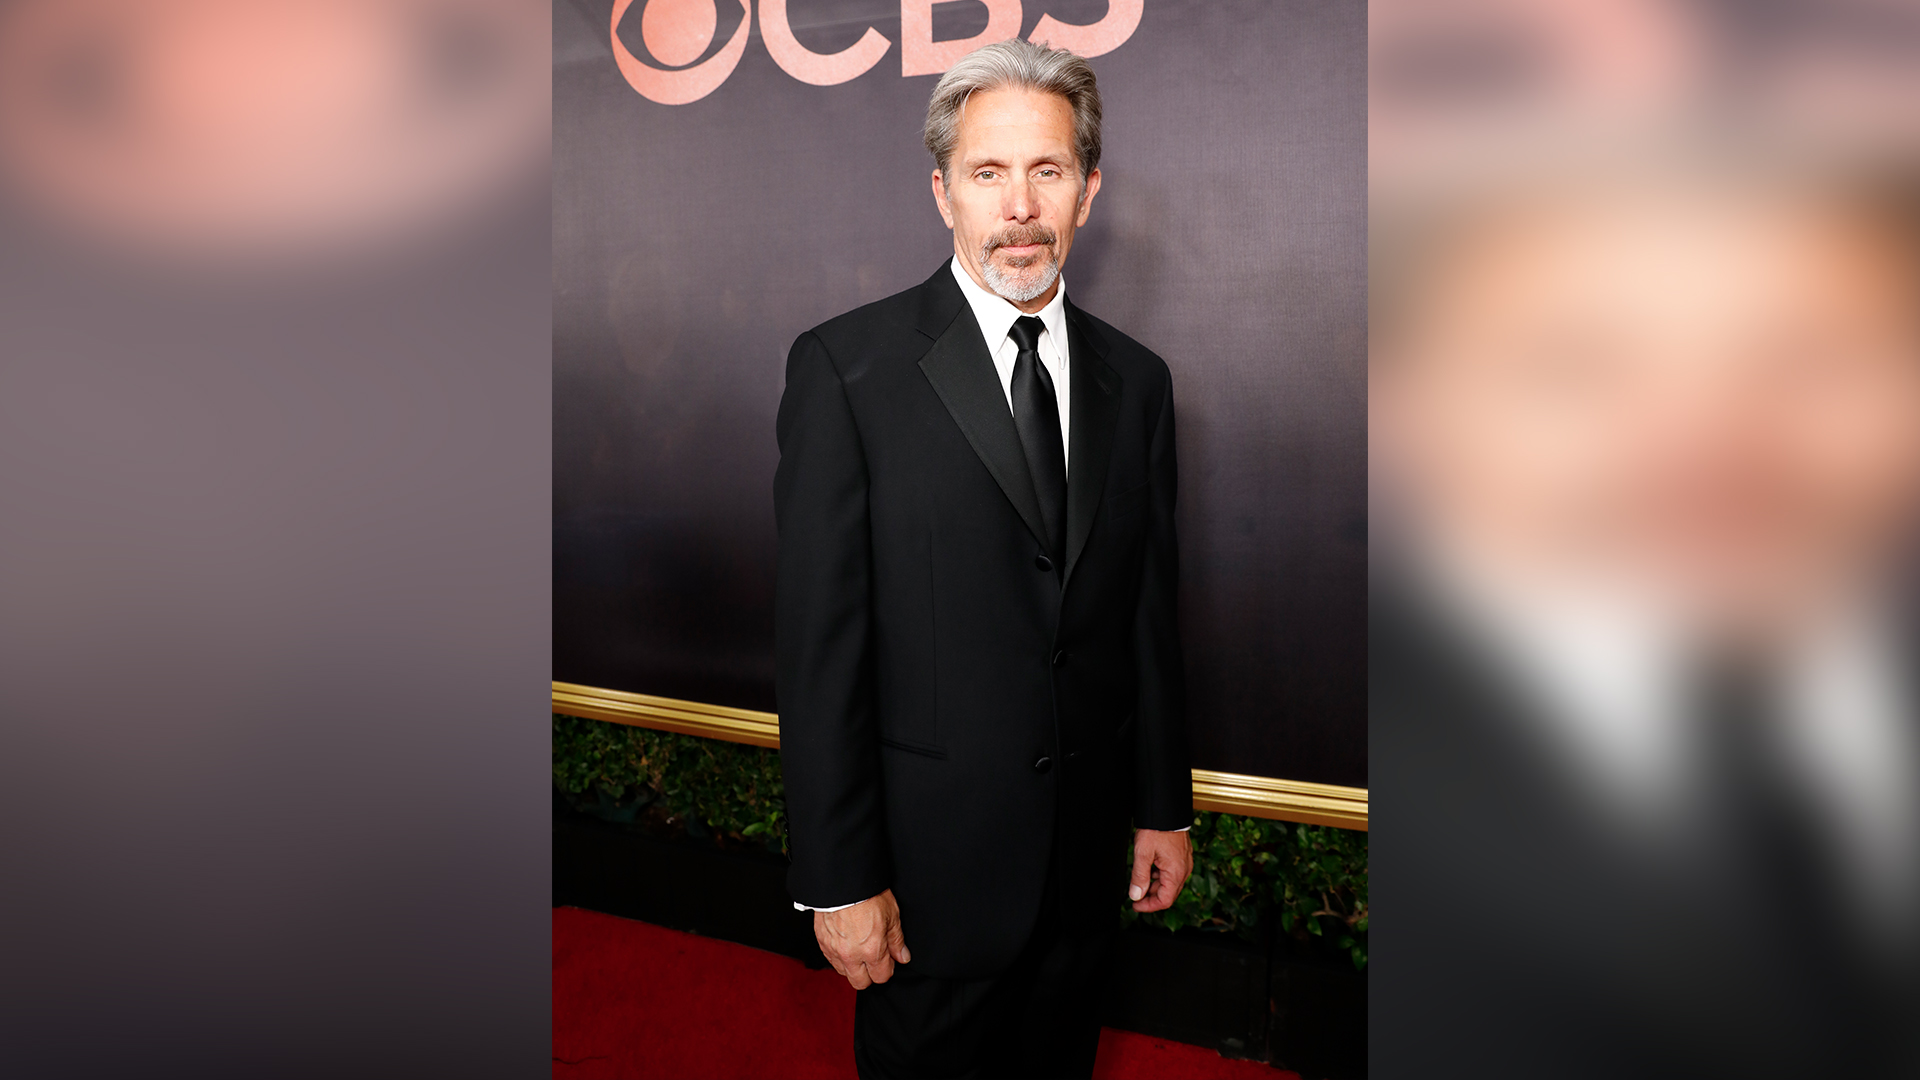 Gary Cole from Veep